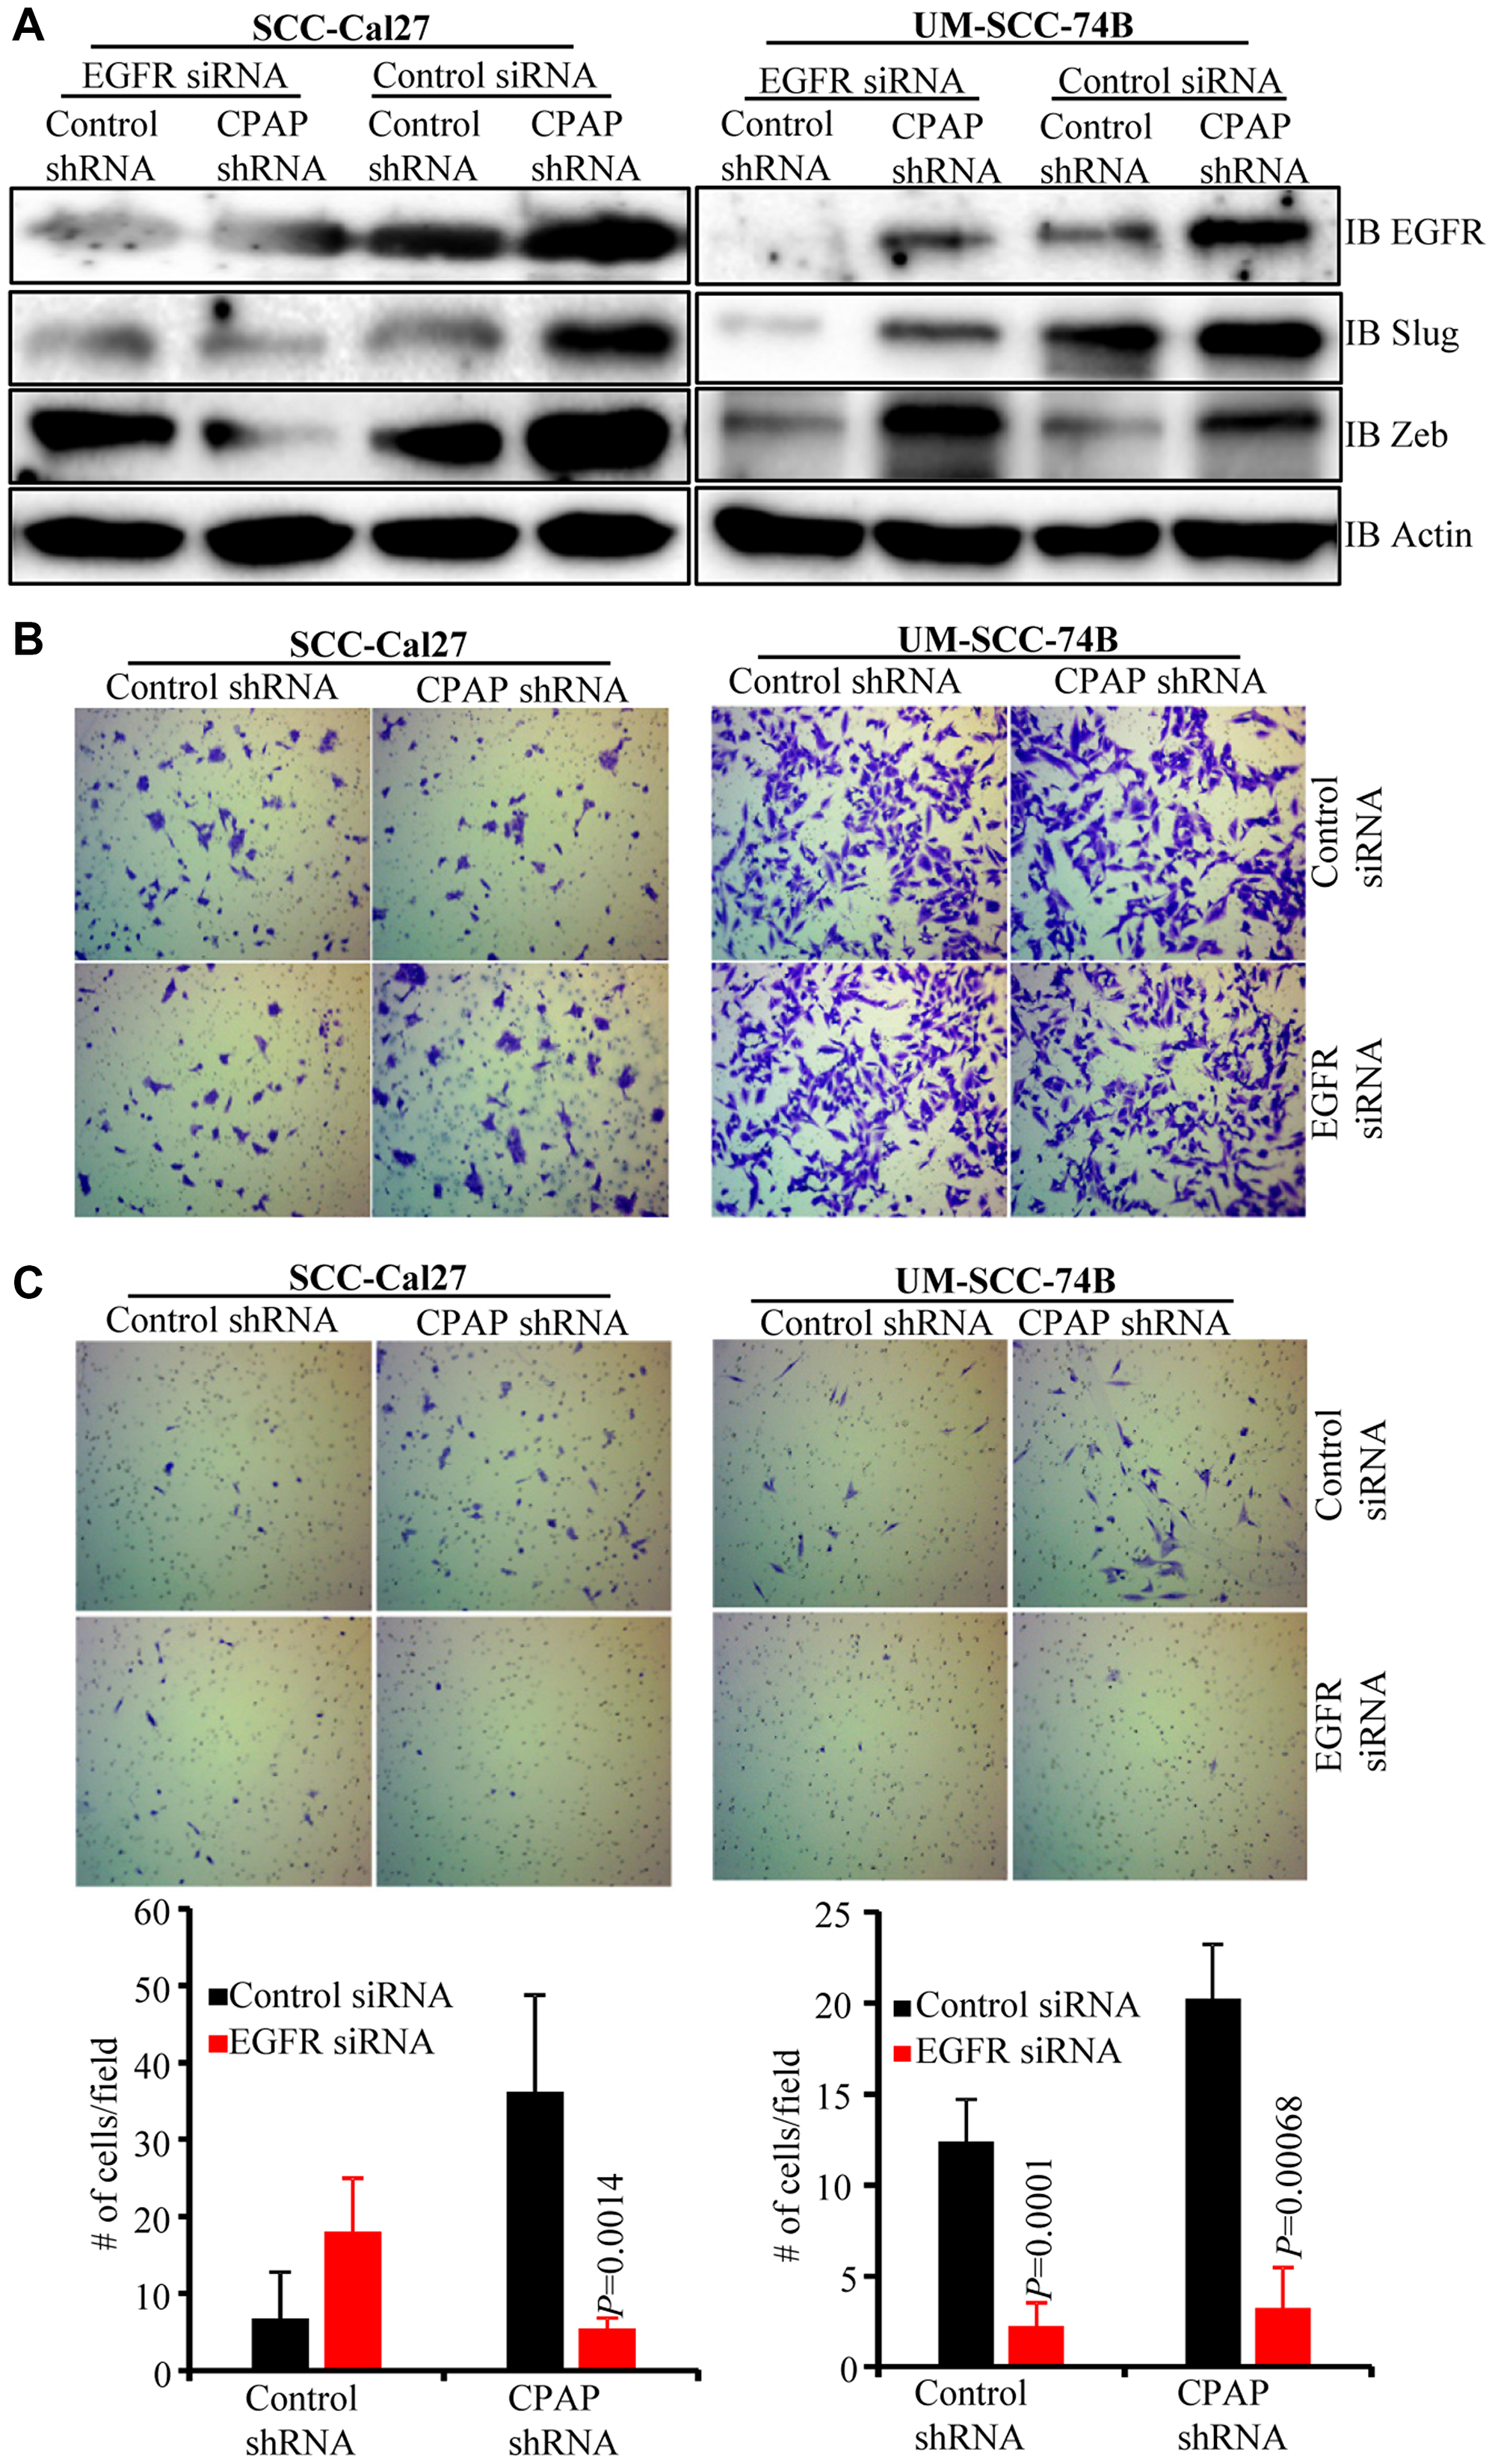 EGFR depletion diminishes the EMT phenotype and invasive property of CPAP-depleted OSCC cells.